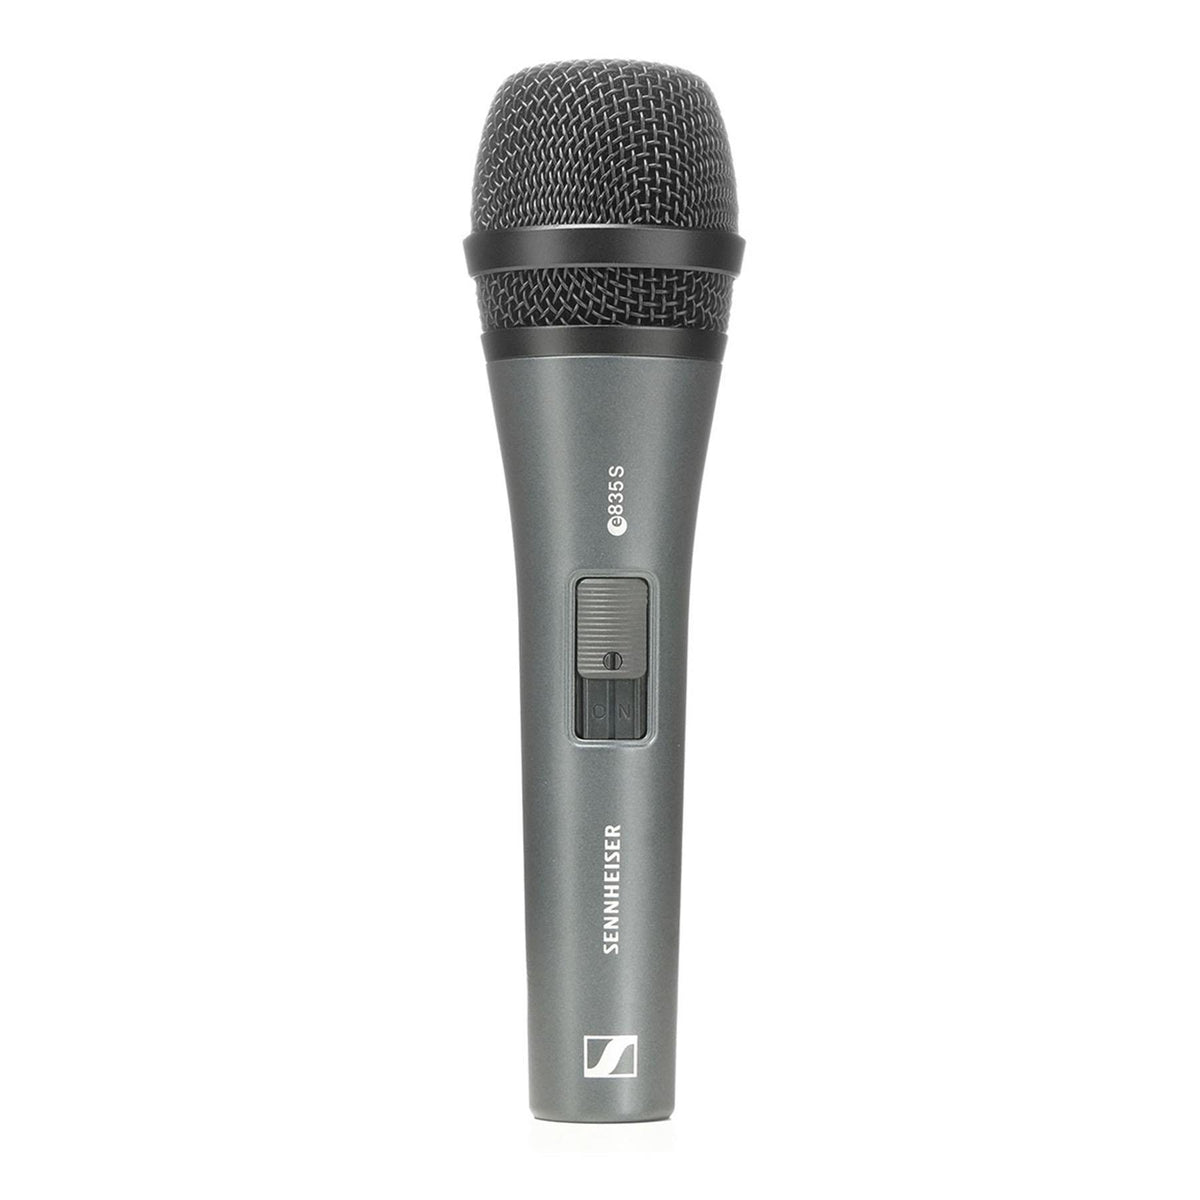 Sennheiser e835-S Dynamic Vocal Microphone with Switch